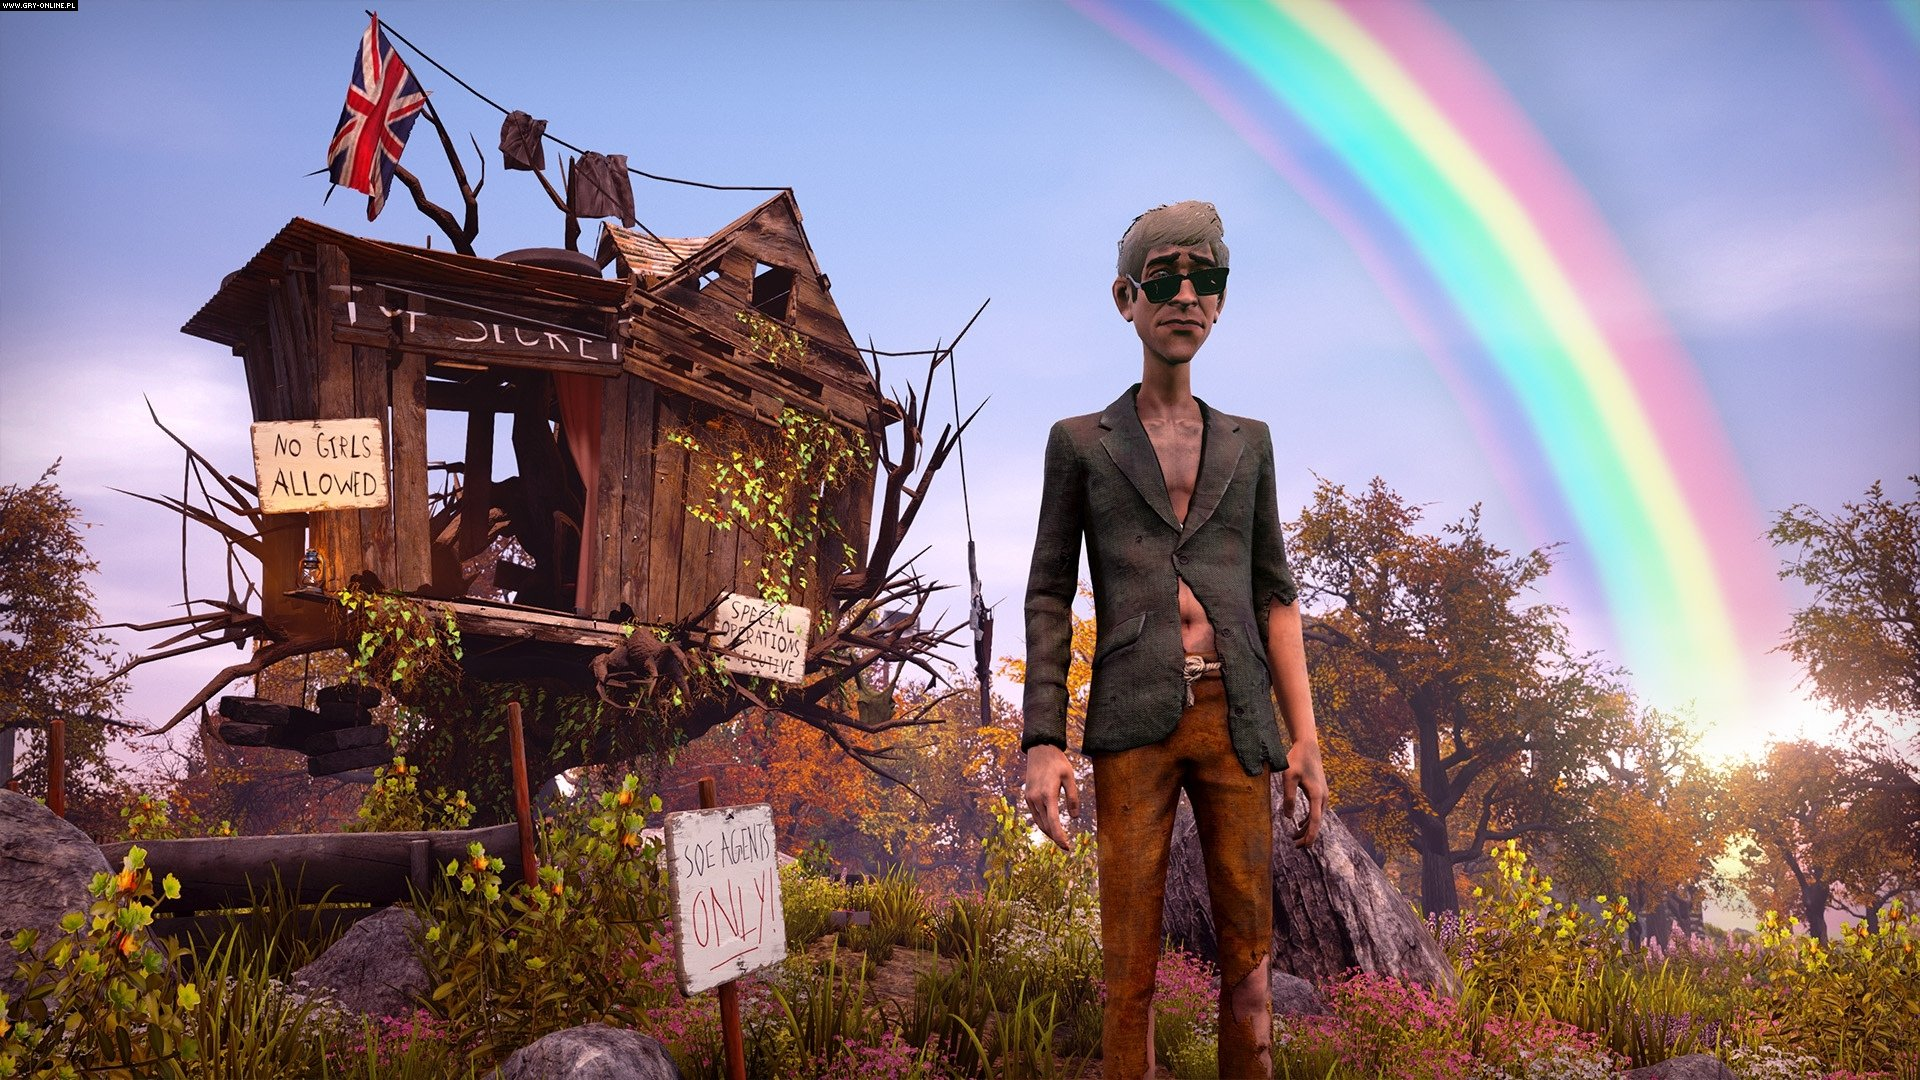 We Happy Few PC, PS4, XONE Gry Screen 24/40, Compulsion Games, Gearbox Publishing